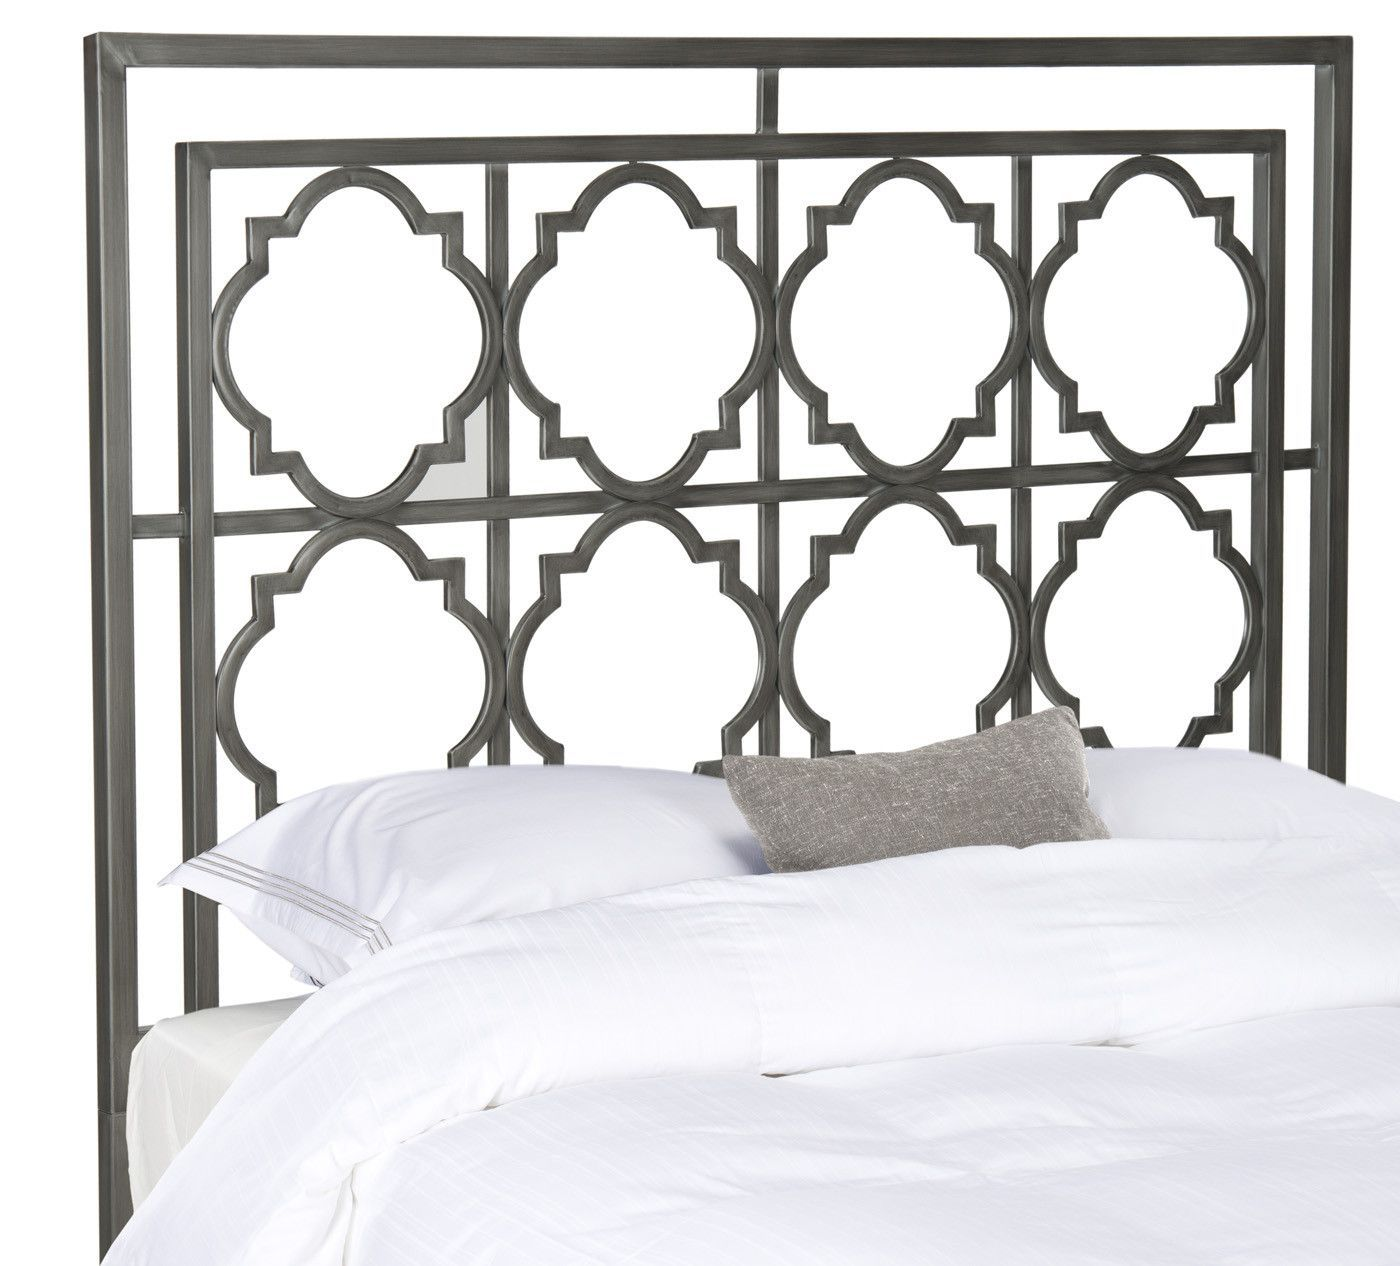 Silva Queen Metal Headboard Queen | Products | Pinterest